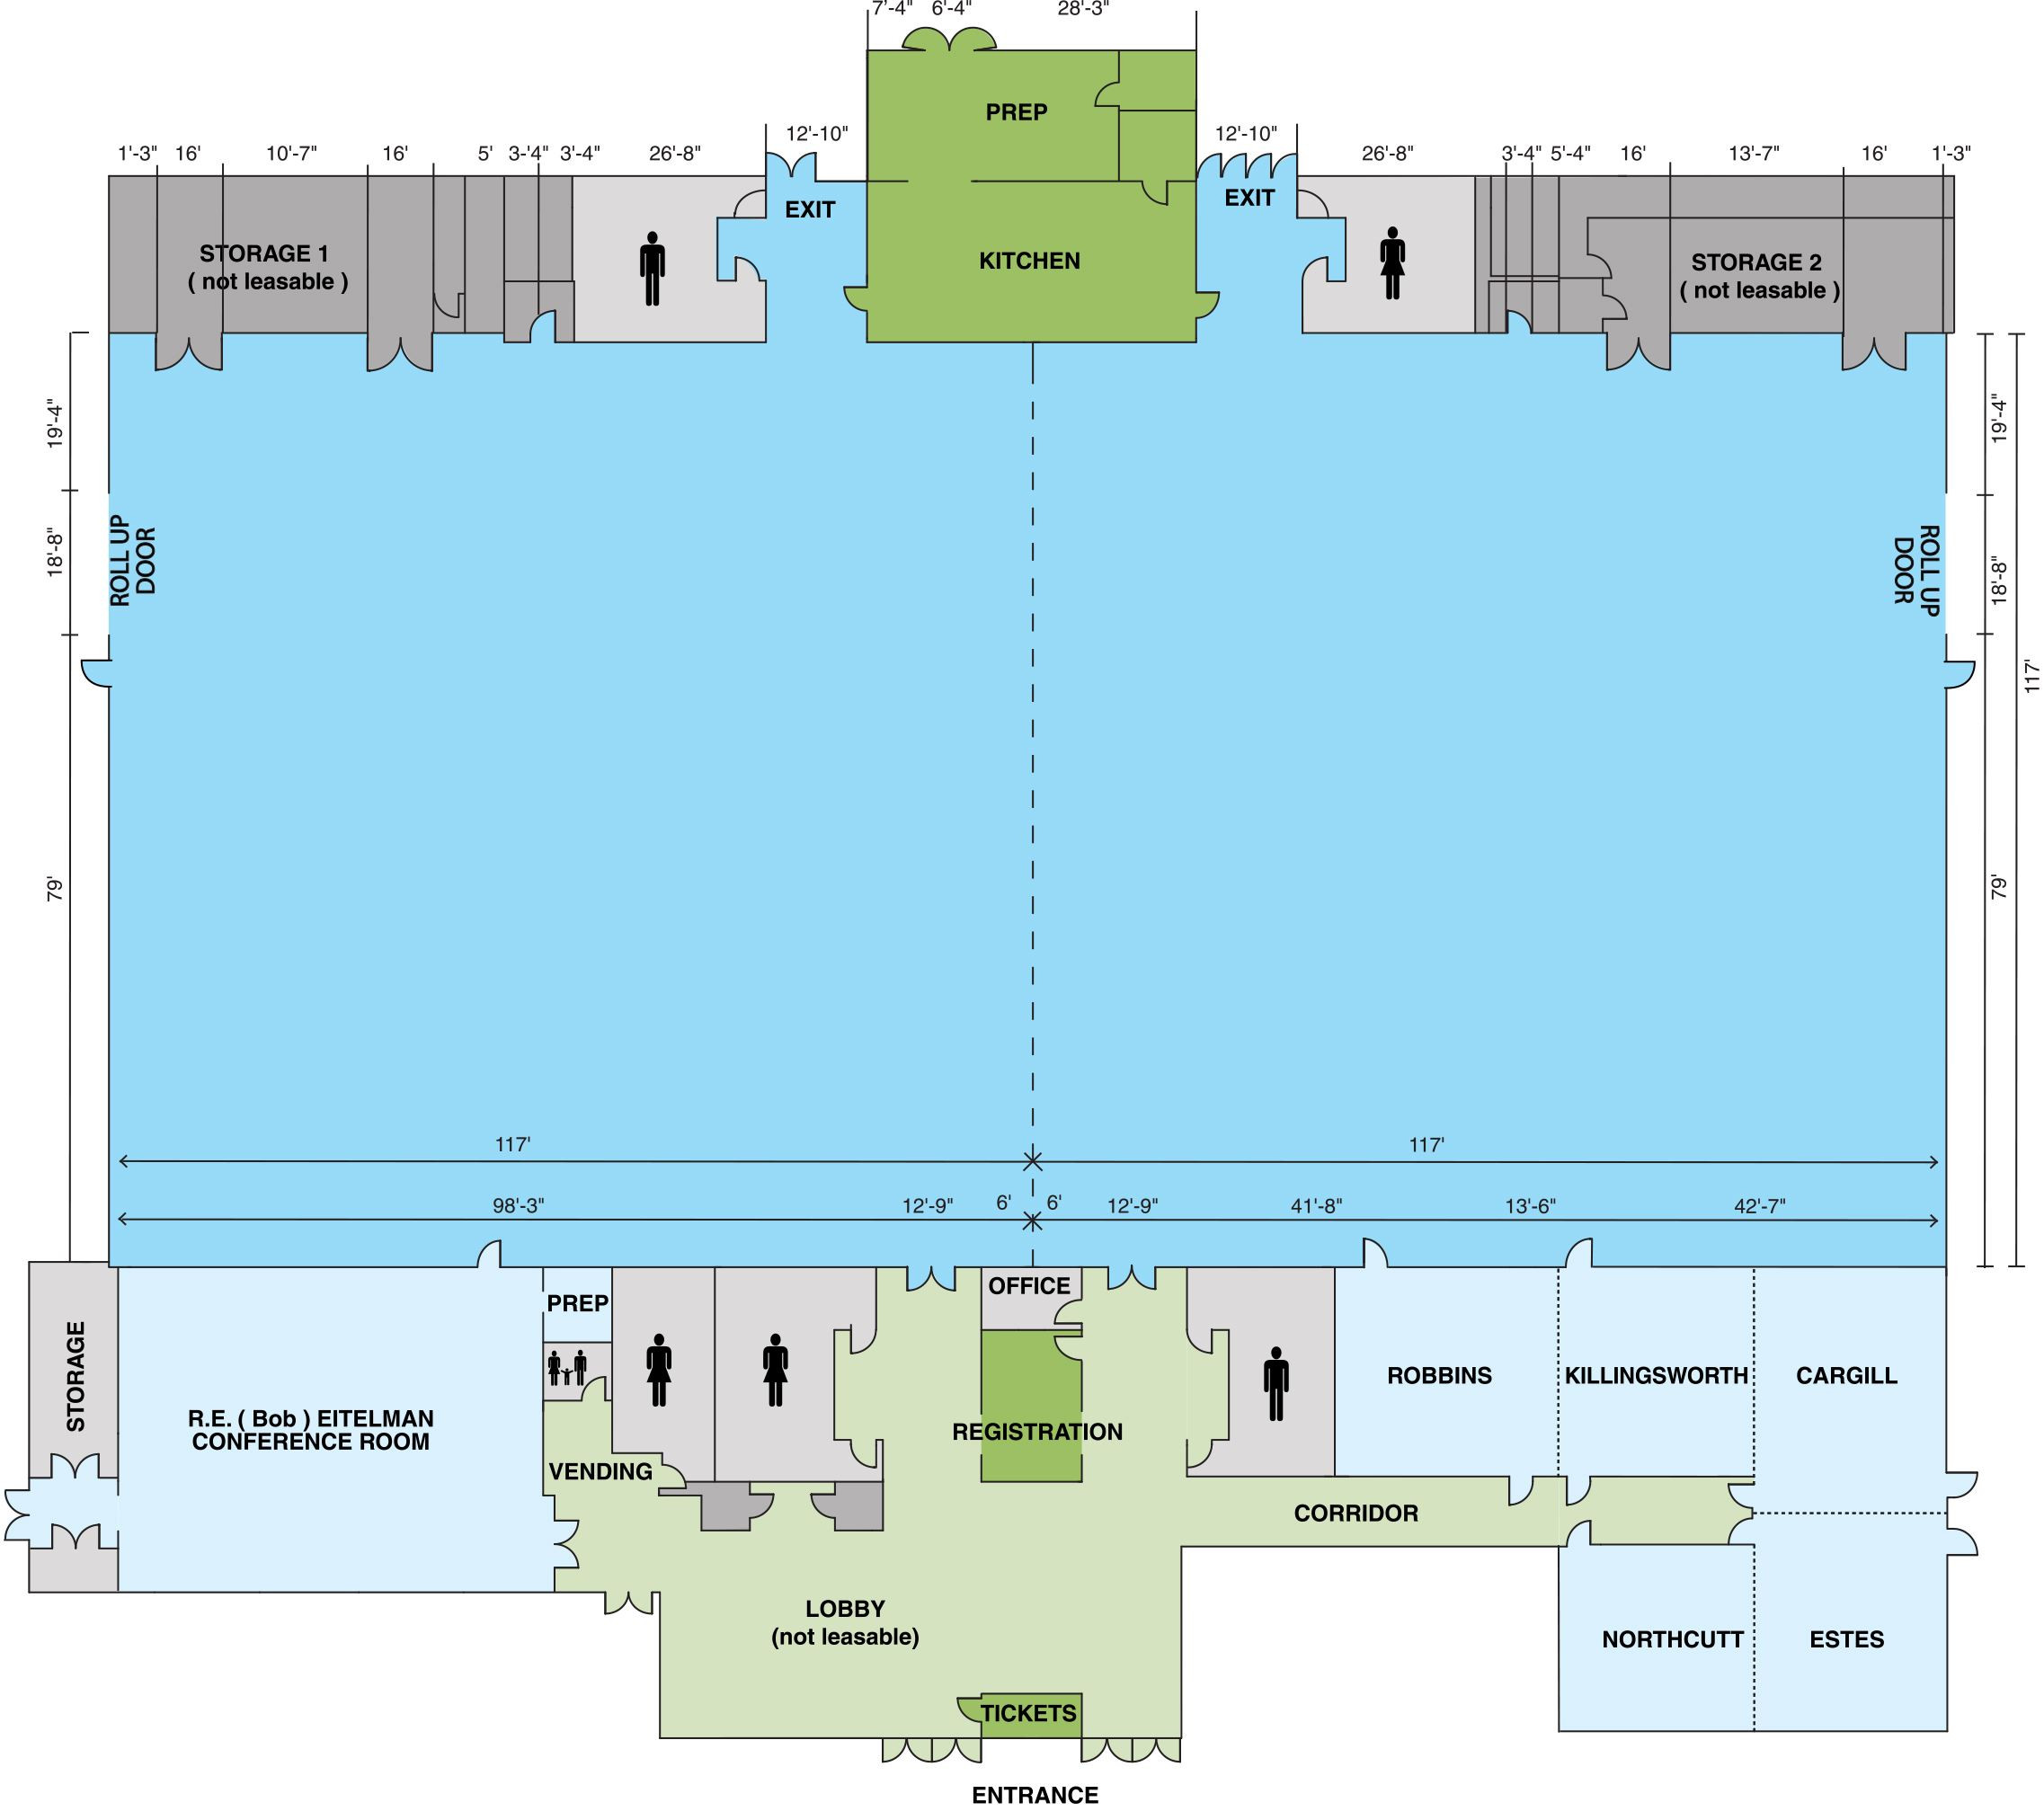 Convention Center Layout Overview